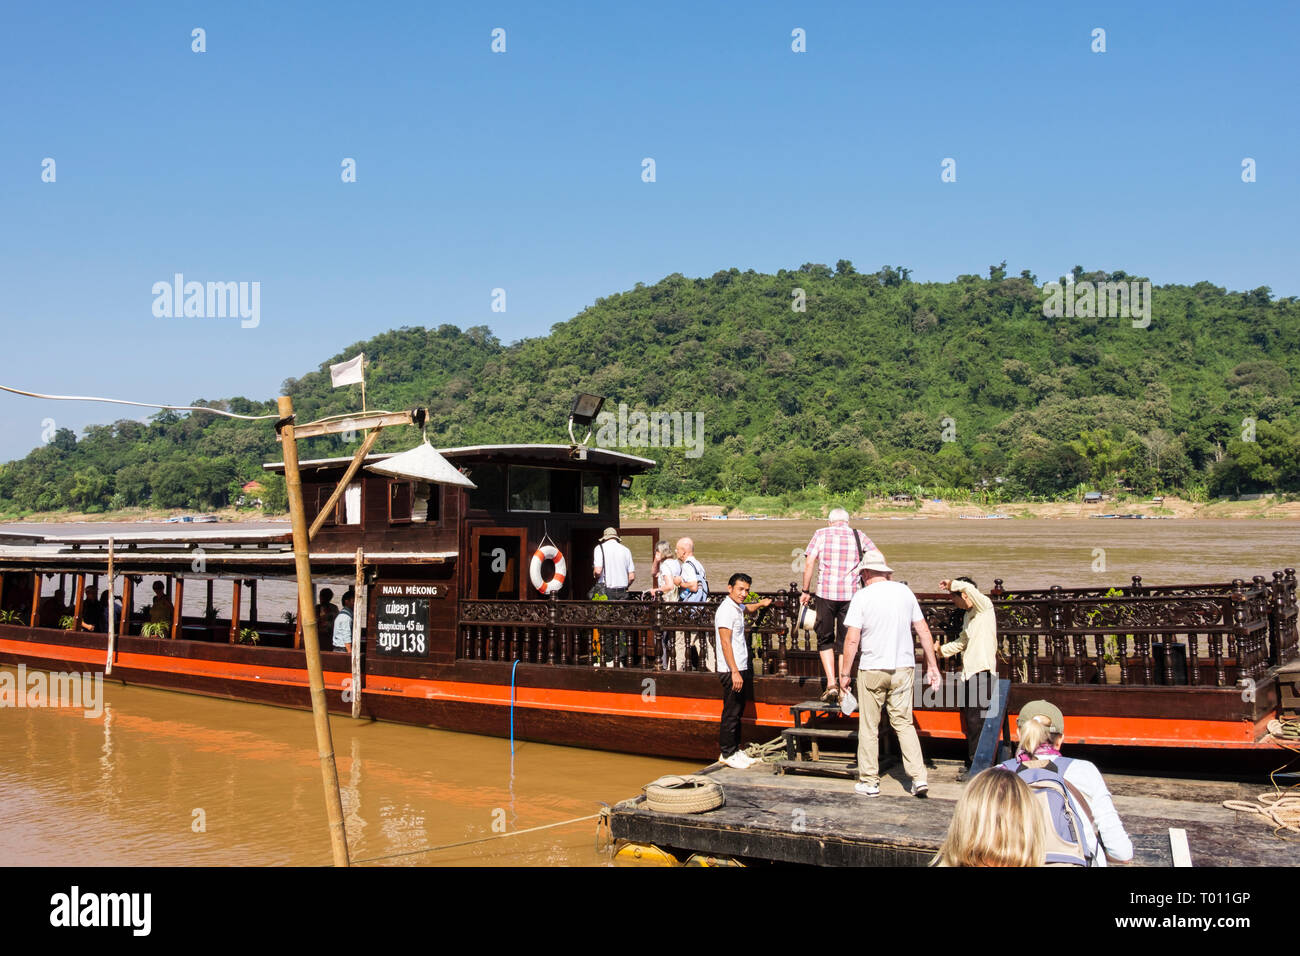 Tourists boarding a traditional wooden boat for a cruise up the Mekong River from Luang Prabang, Laos, southeast Asia Stock Photo